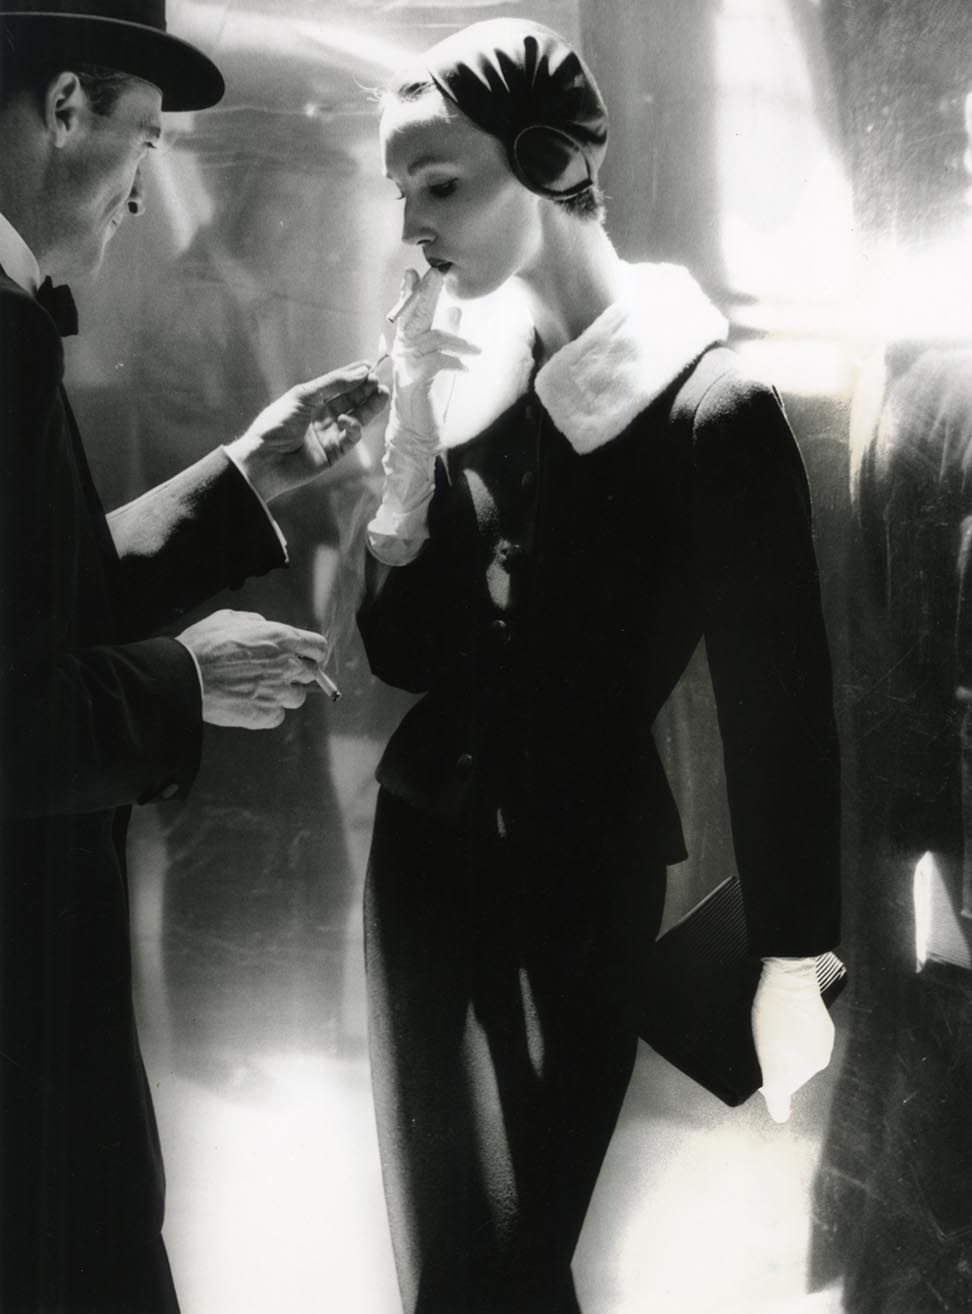 Lillian Bassman By Night, Shining Wool and Towering Heel, Evelyn Tripp, Suit by Handmacher, New York, Harper's Bazaar